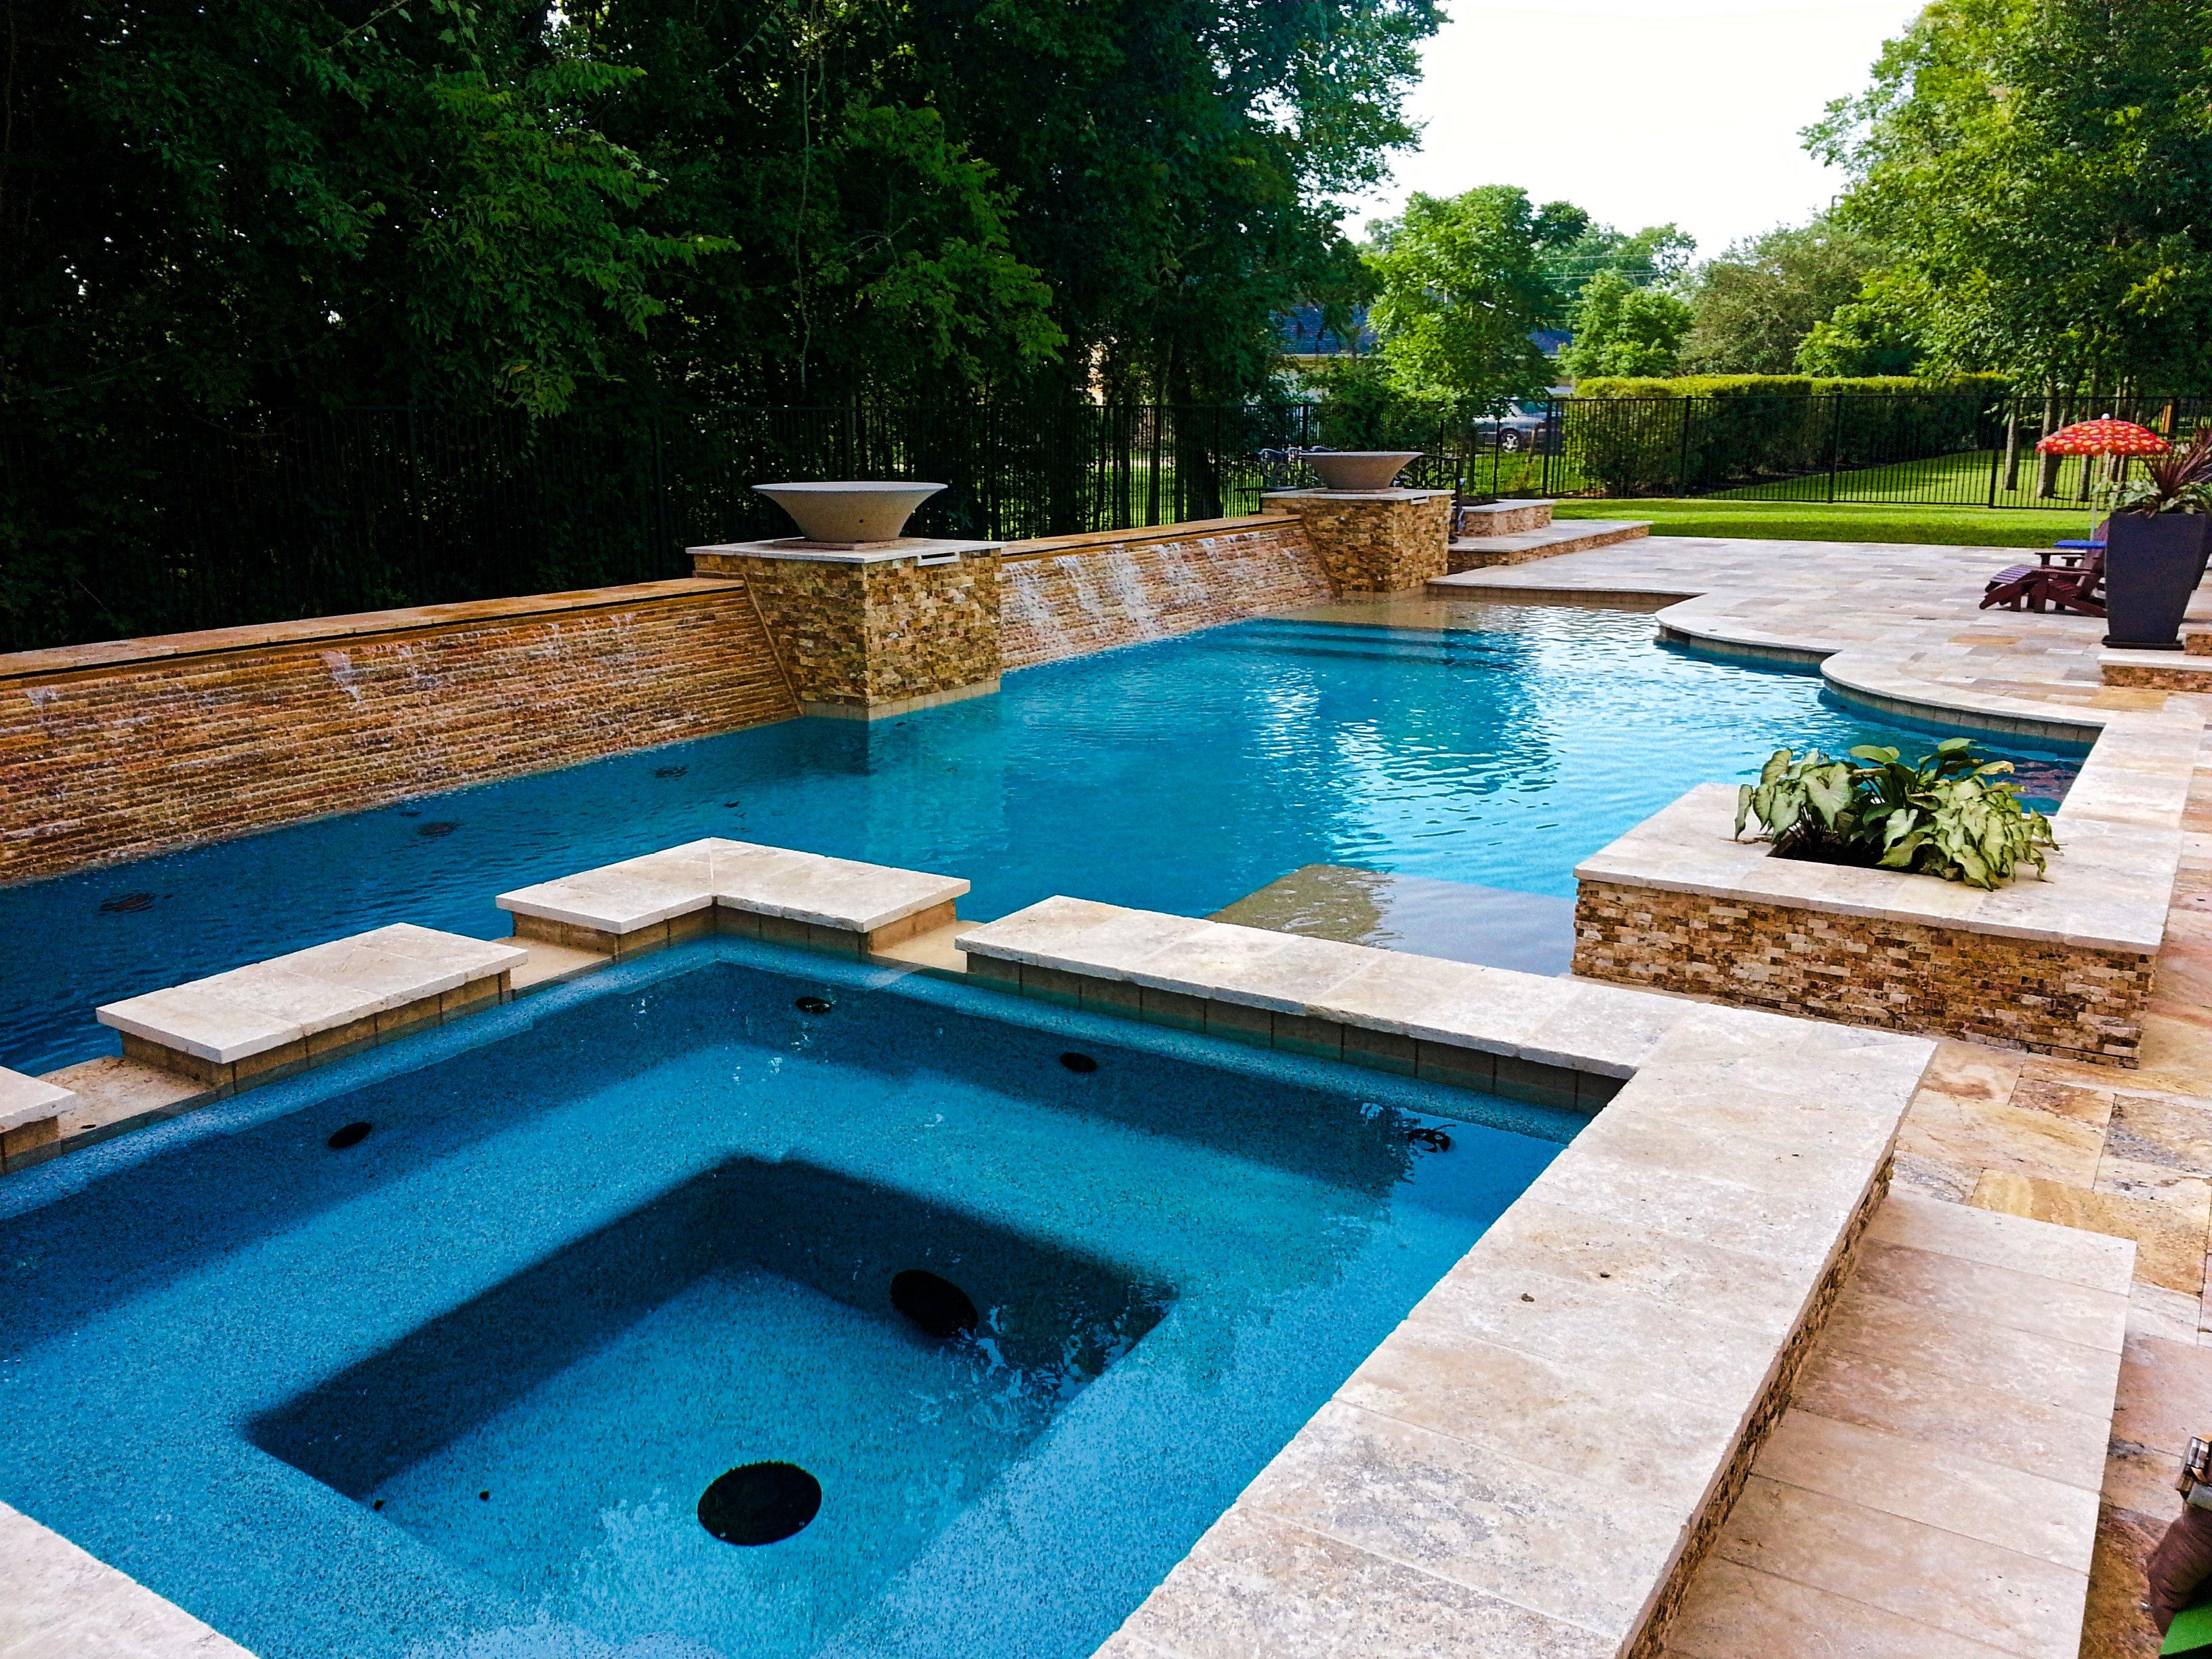 Eckel pool concepts in missouri city tx 77459 for Pool design concepts